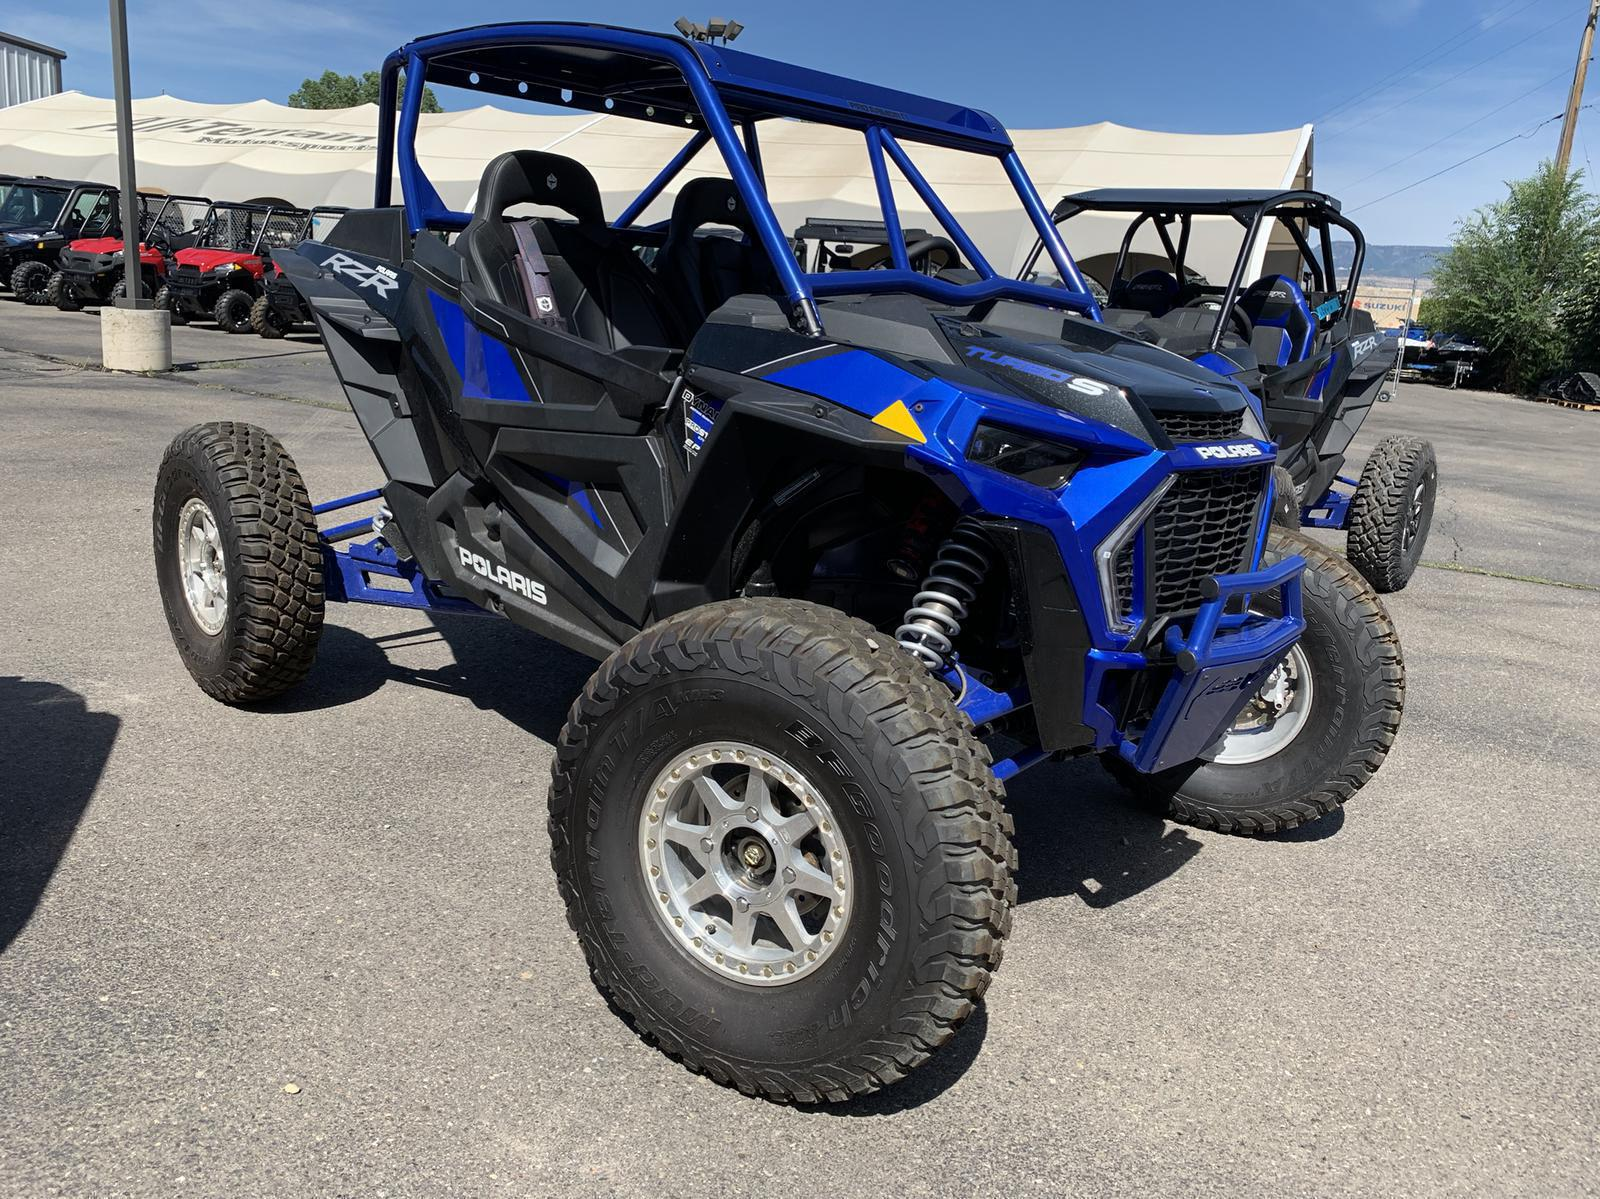 Inventory All-Terrain Motorsports, Inc  Grand Junction, CO (970) 434